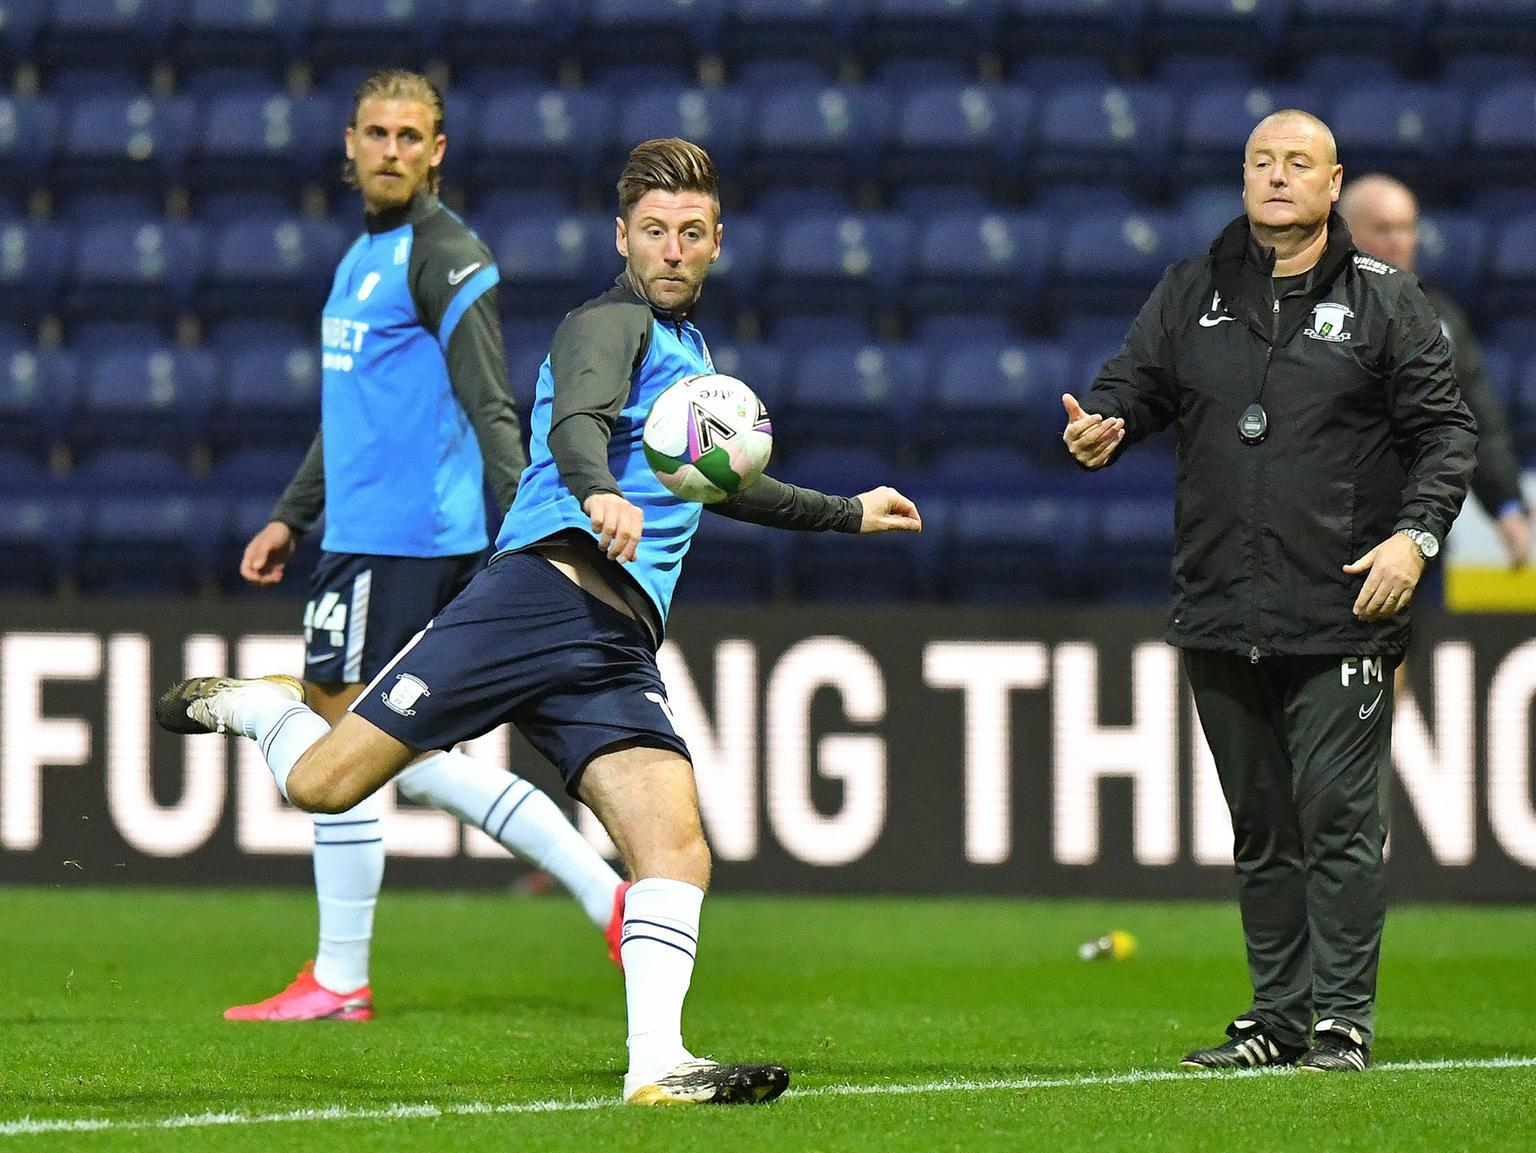 Huddersfield v Preston North End team news - Unchanged for PNE and a coaching role for Paul Gallagher